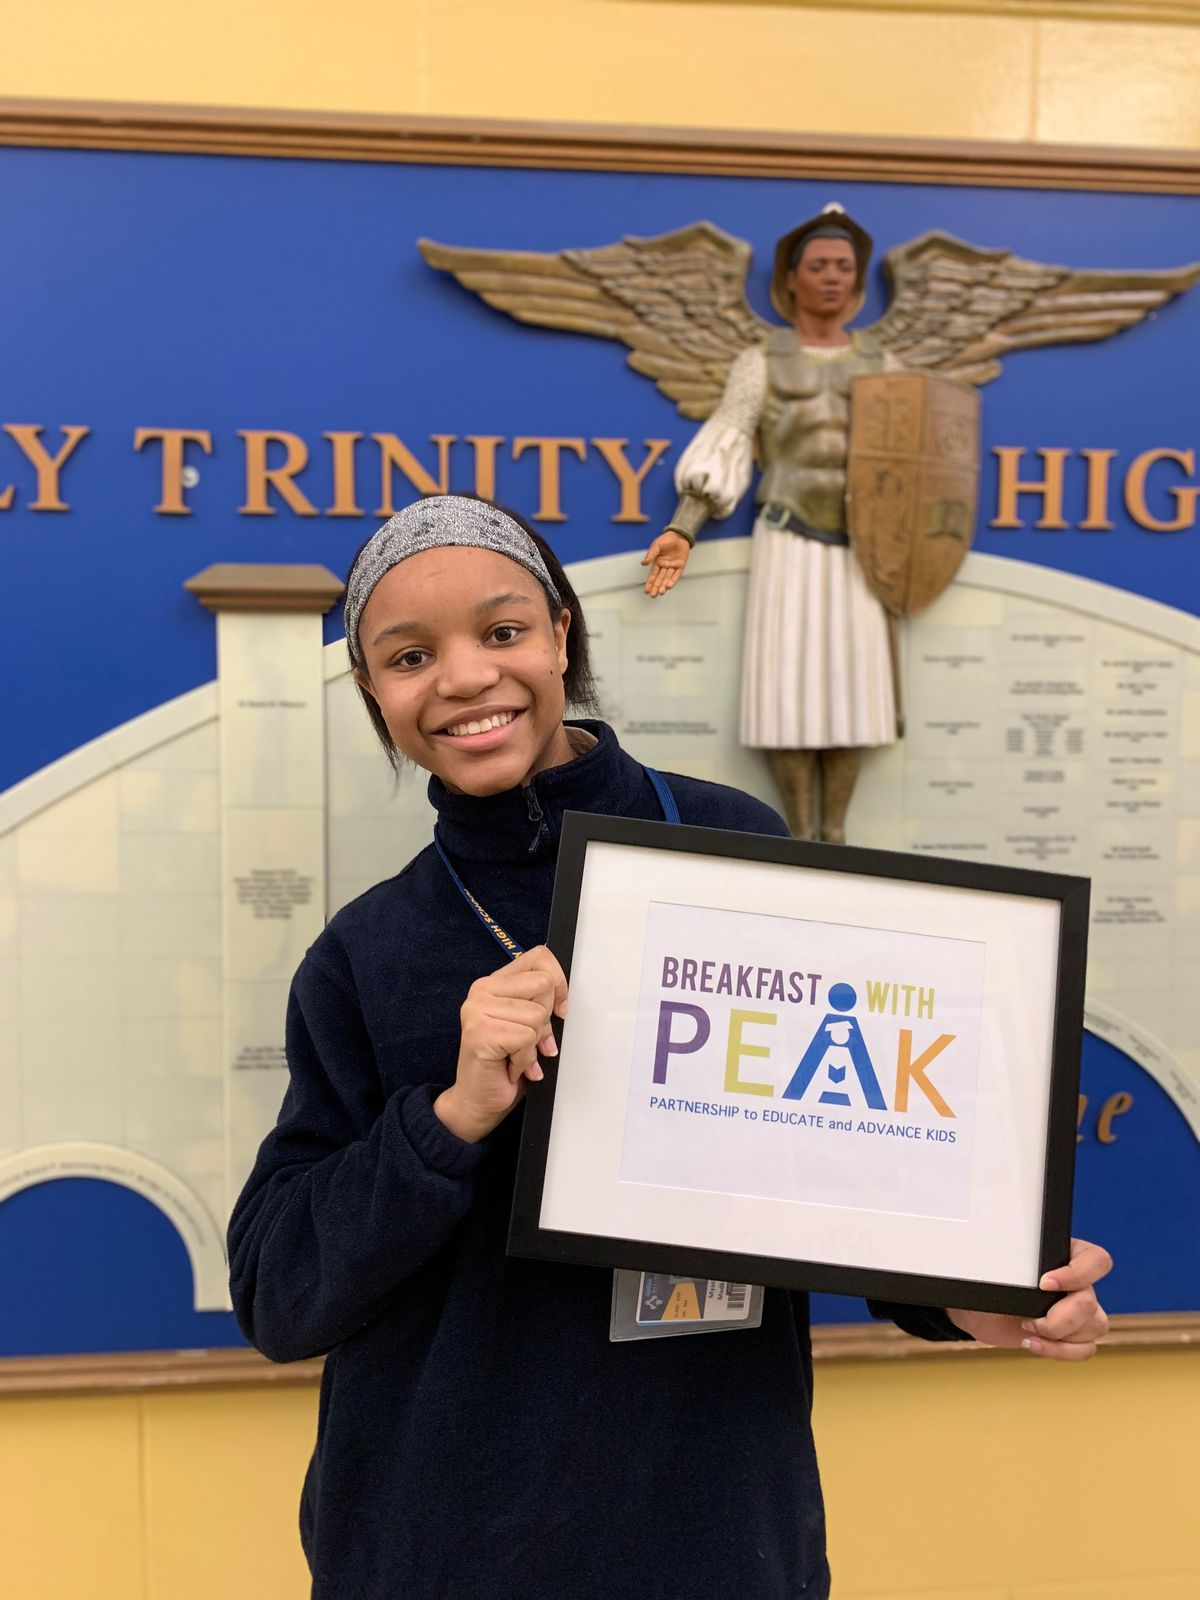 """Myasia Madkins, 17, who attends Holy Trinity High School through the Partnership to Educate and Advance Kids, a tuition and mentoring program, has seen her grades go up during remote learning, bucking the trend. """"Because of COVID and being at home, I didn't have as many distractions. I focused in on schoolwork."""""""